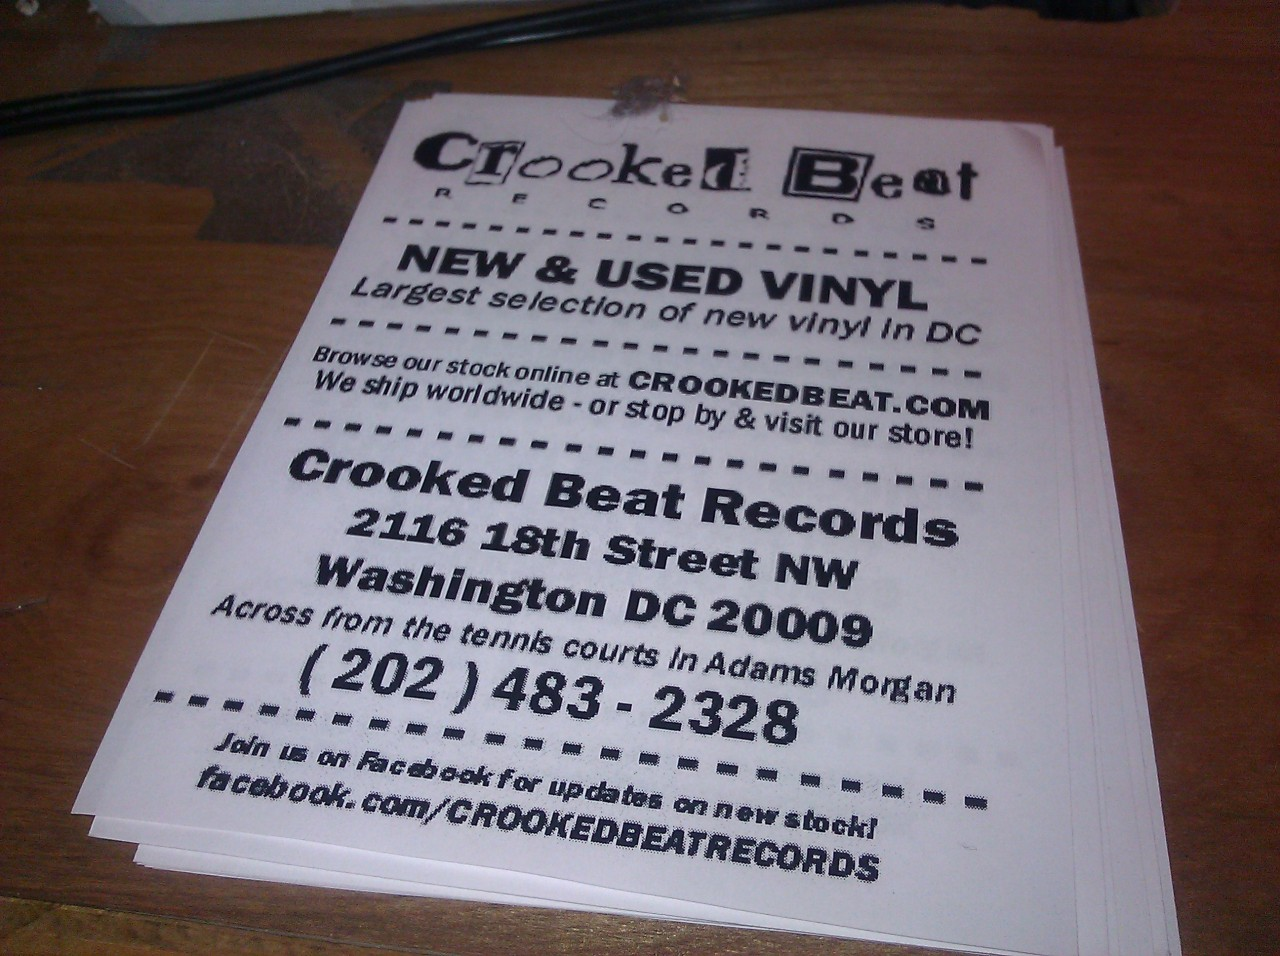 Crooked Beat Records